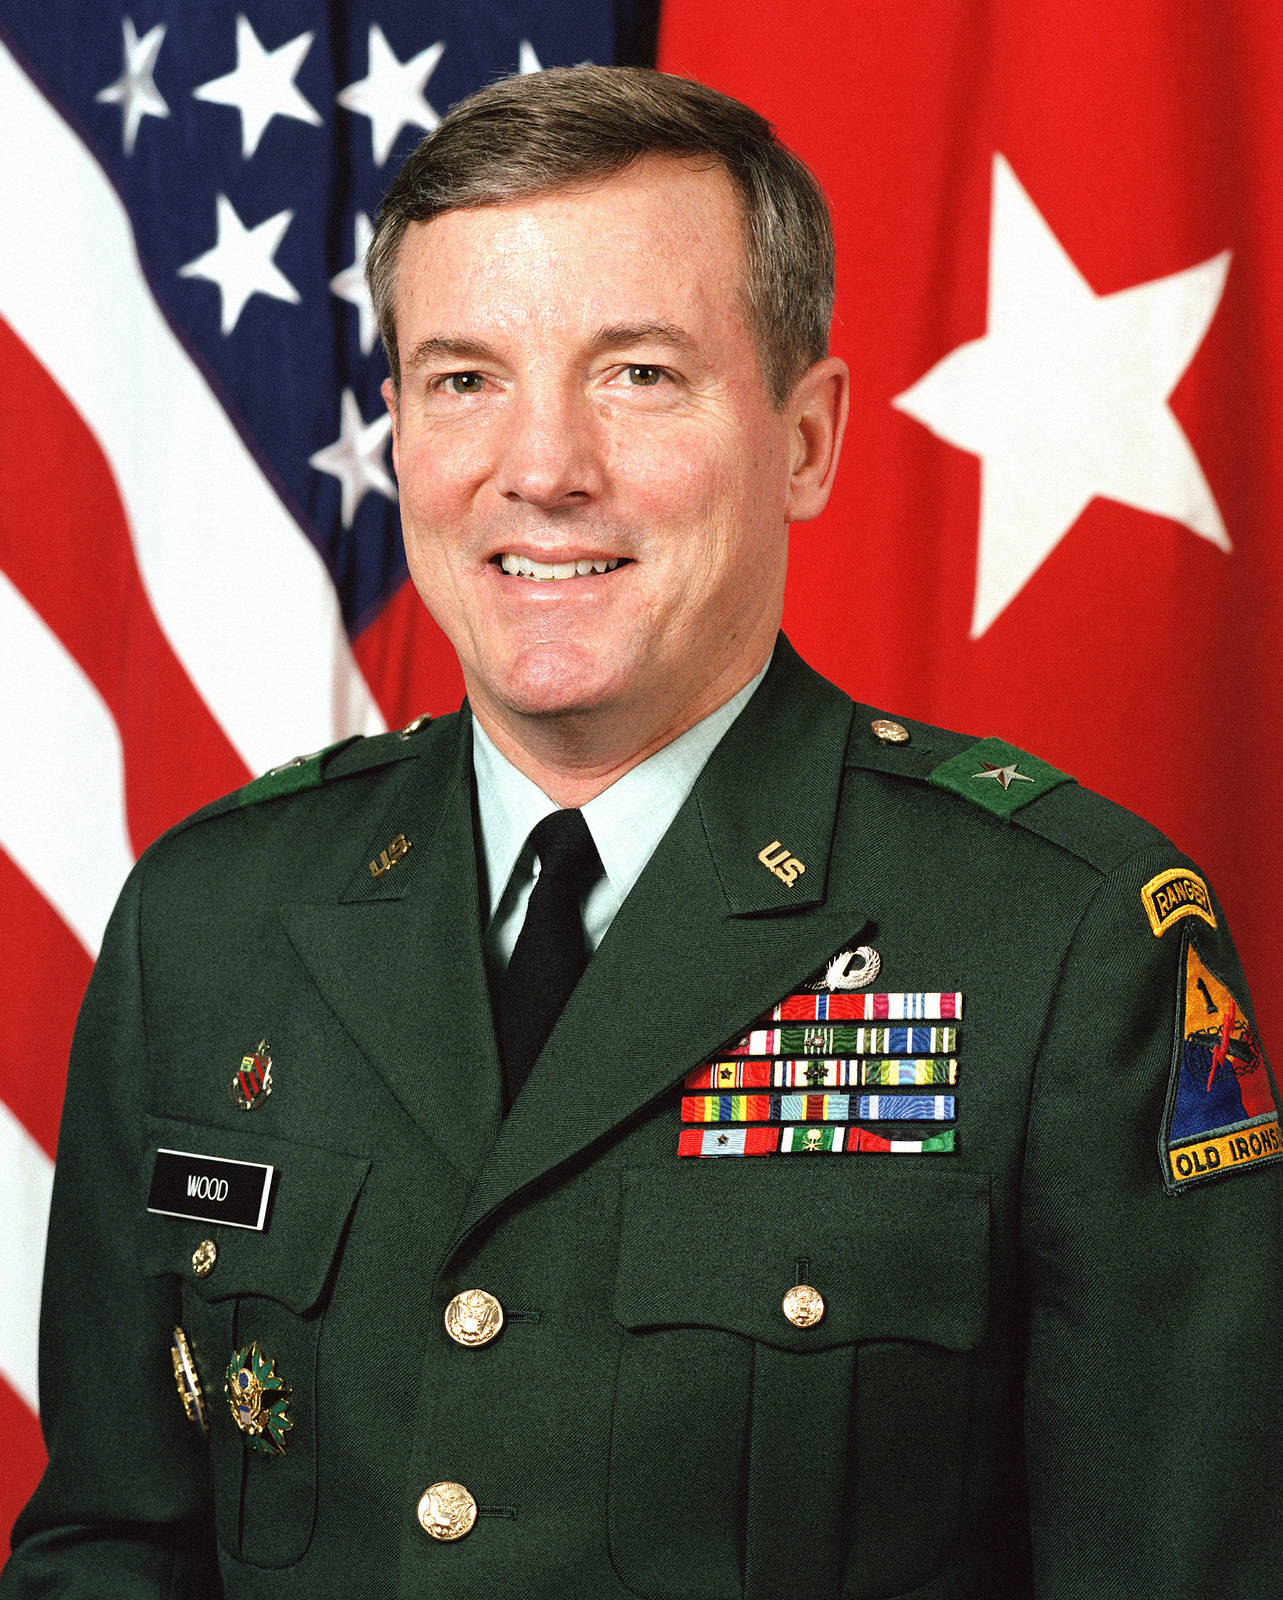 Brigadier General John R. Wood, USA (uncovered)